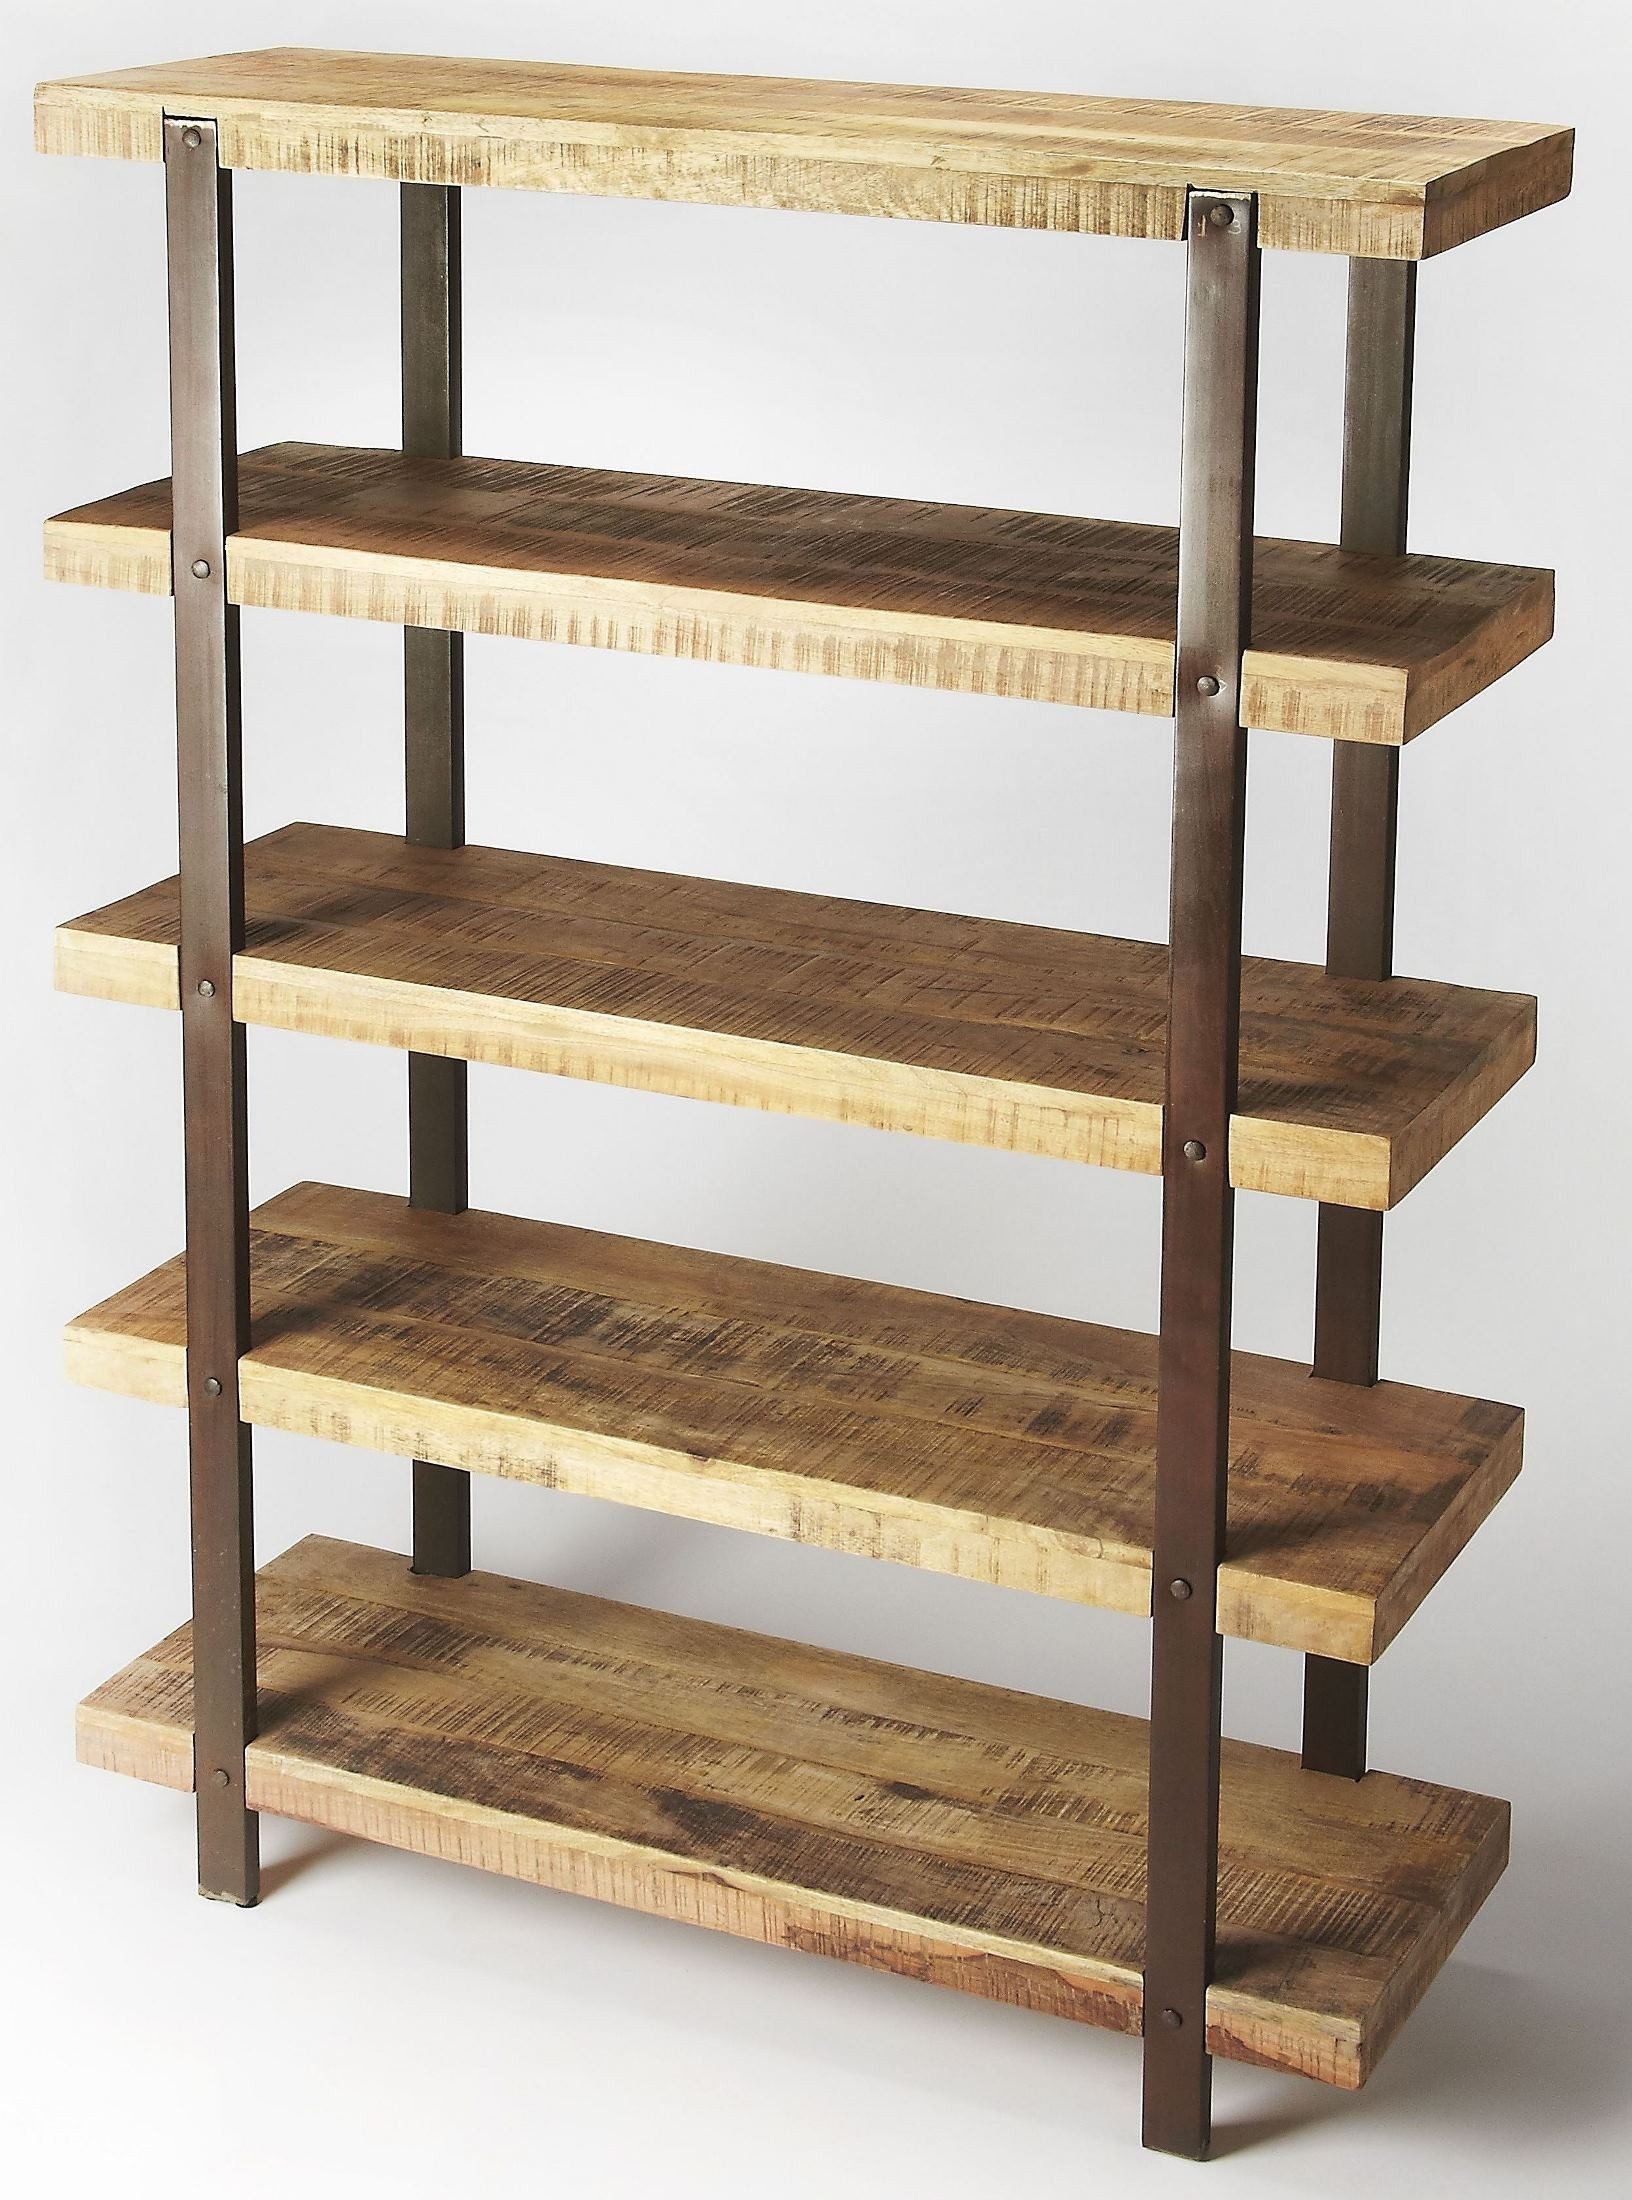 Atherton industrial chic etagere 5182330 butler for Etagere campagne chic